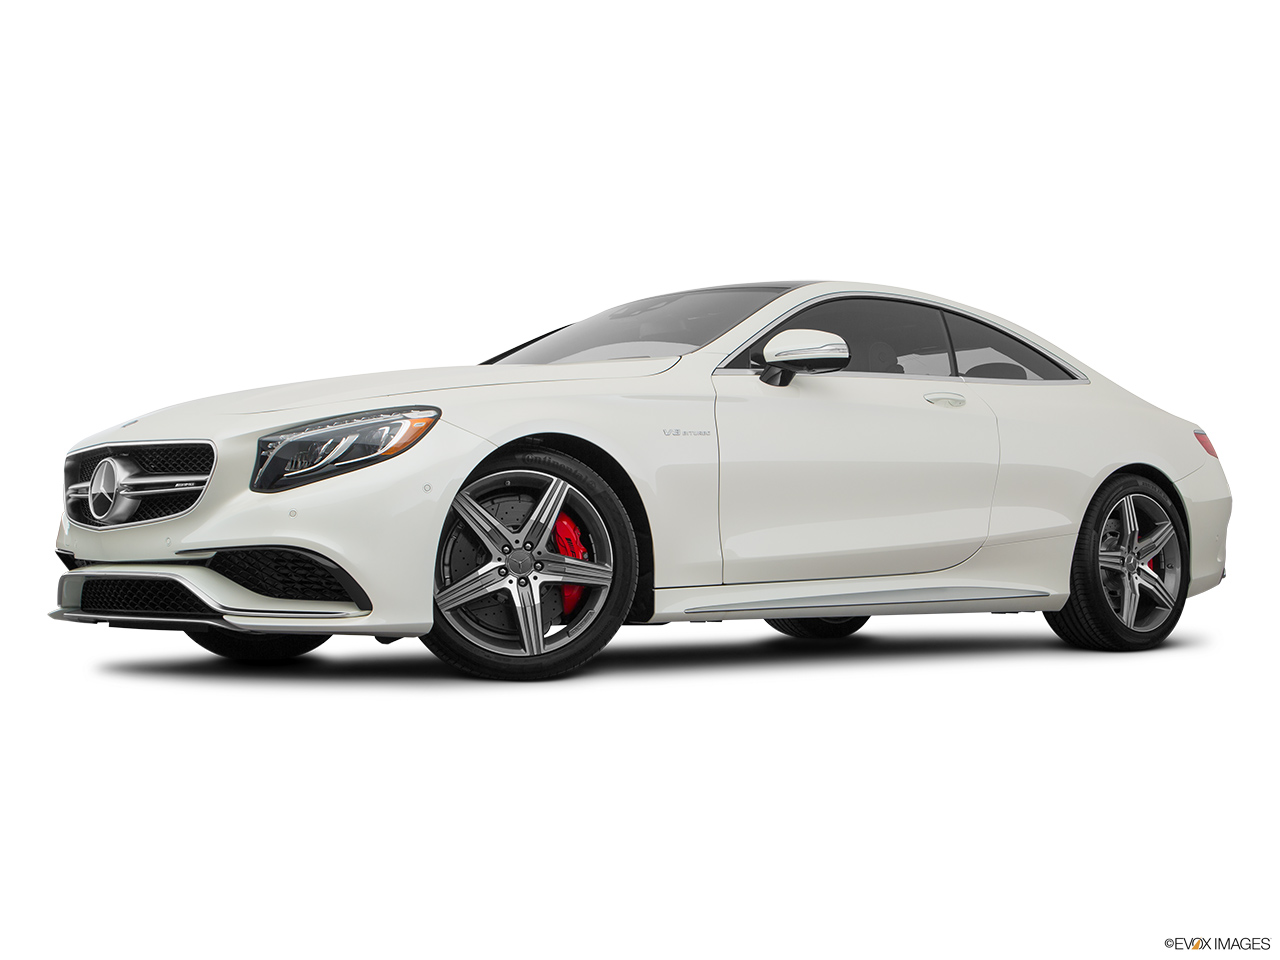 Mercedes benz s 63 amg coupe 2017 brabus 850 in bahrain for Mercedes benz brabus price